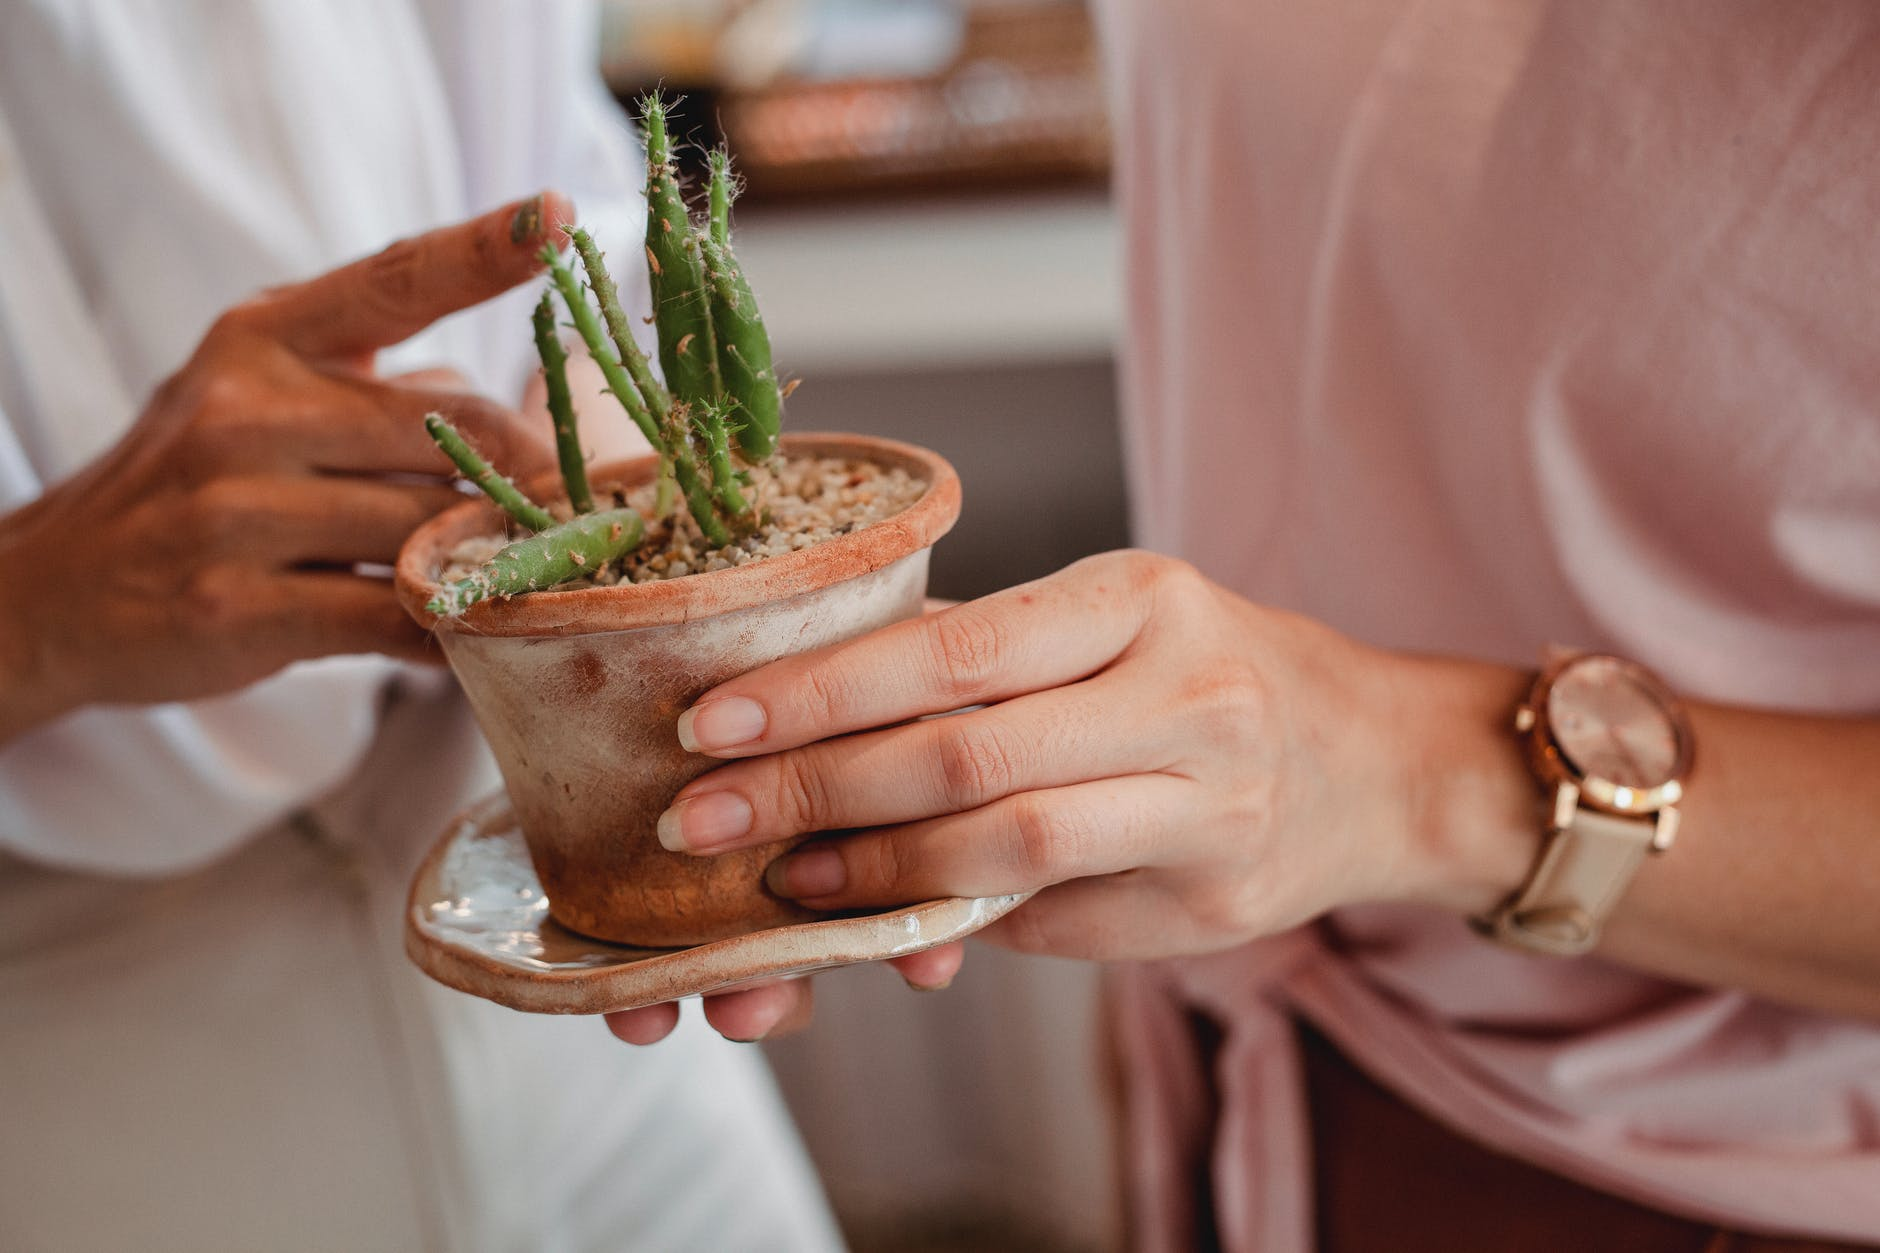 crop women with potted cactus